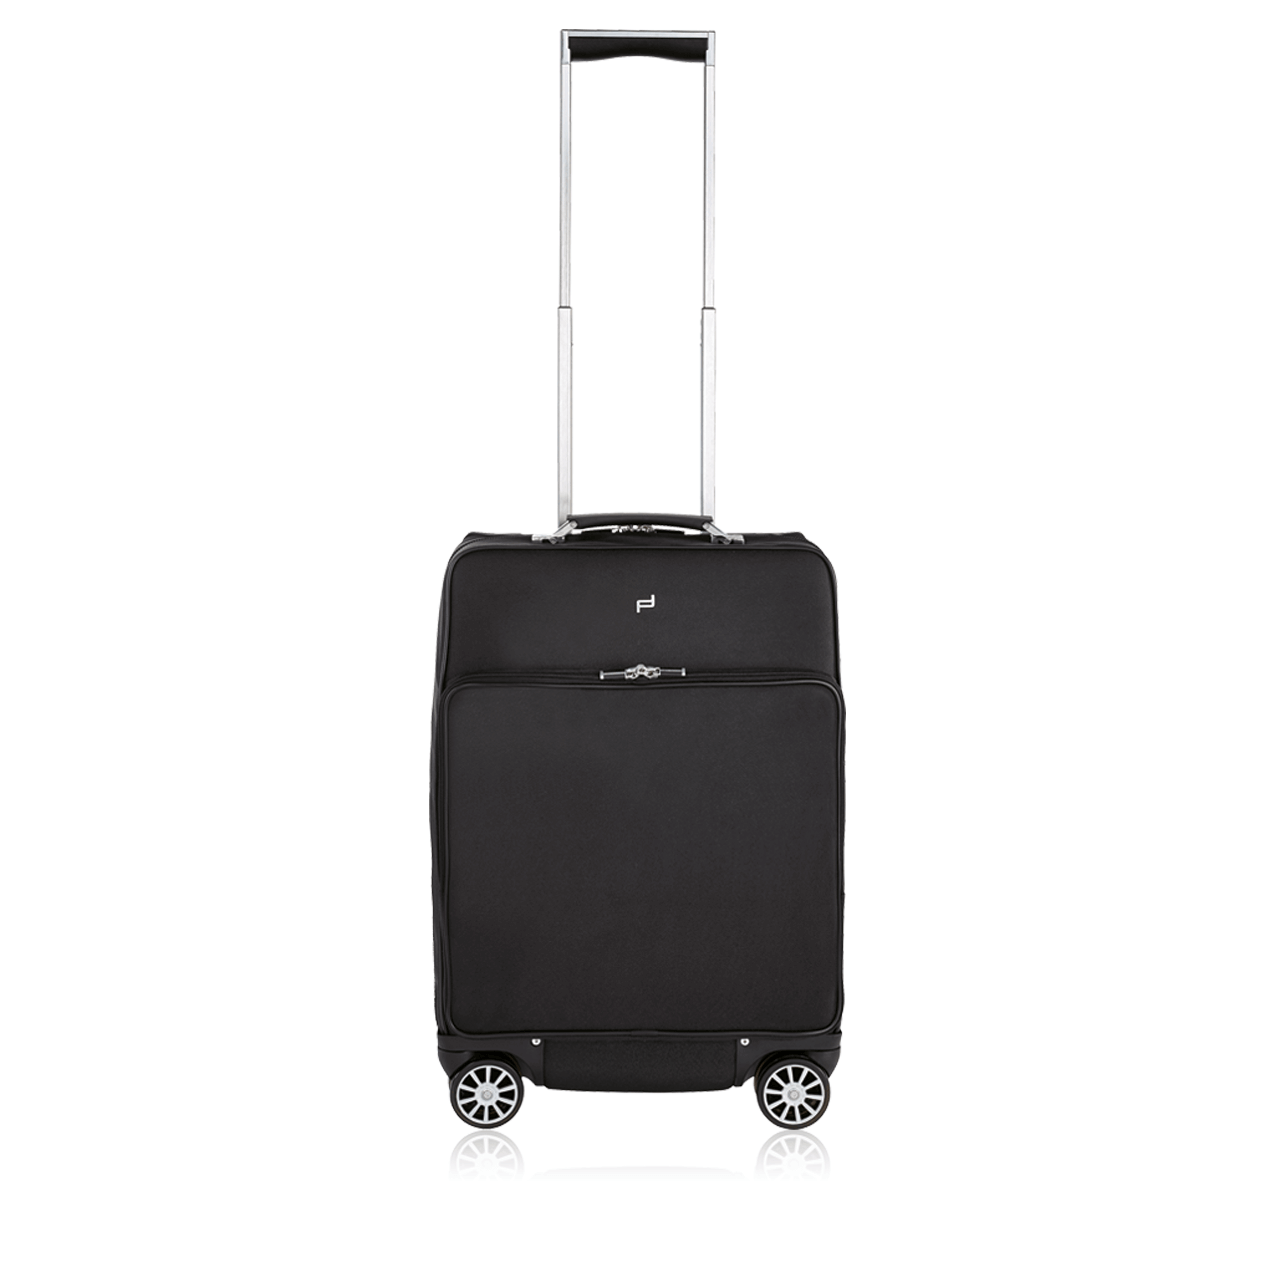 ROADSTER SOFTCASE SERIES TROLLEY 670 - фото 2